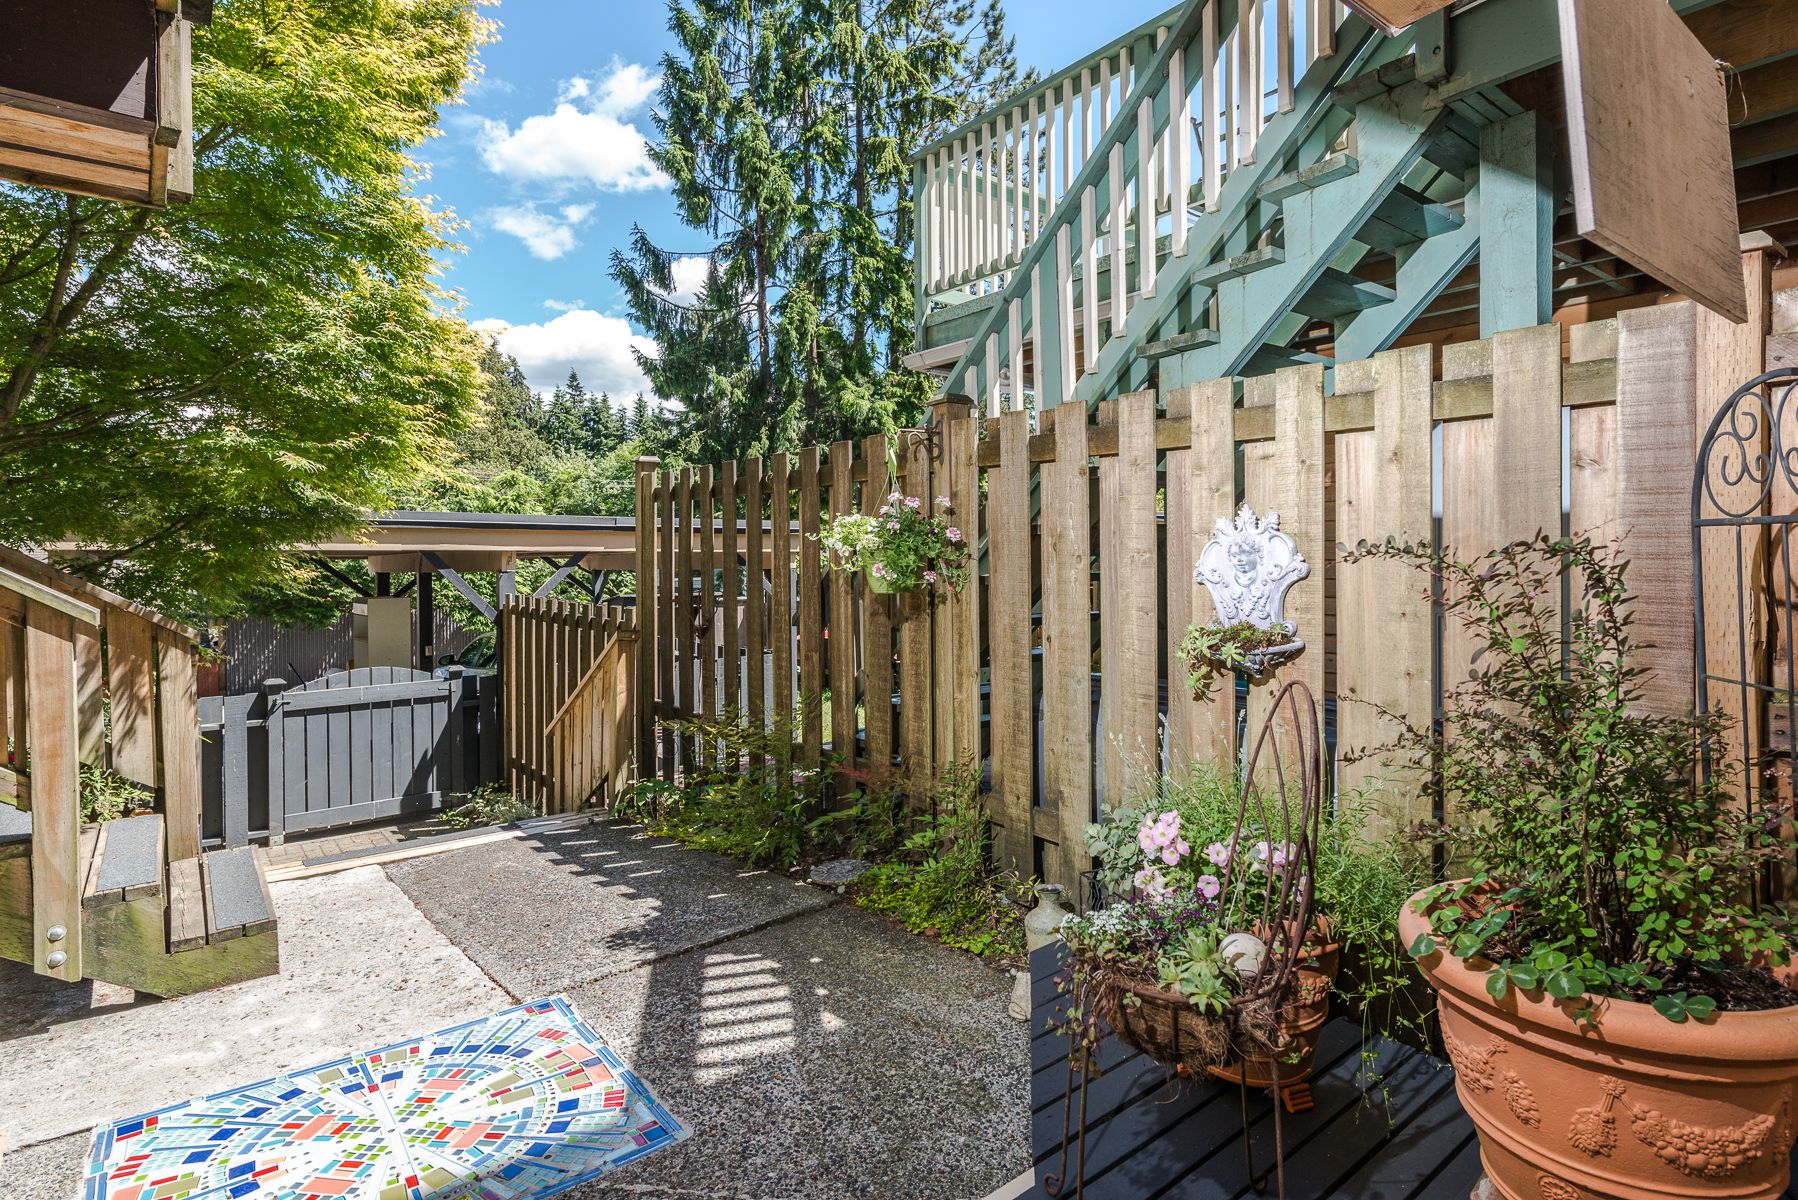 Photo 18: Photos: 1196 DEEP COVE Road in North Vancouver: Deep Cove Townhouse for sale : MLS®# R2279421